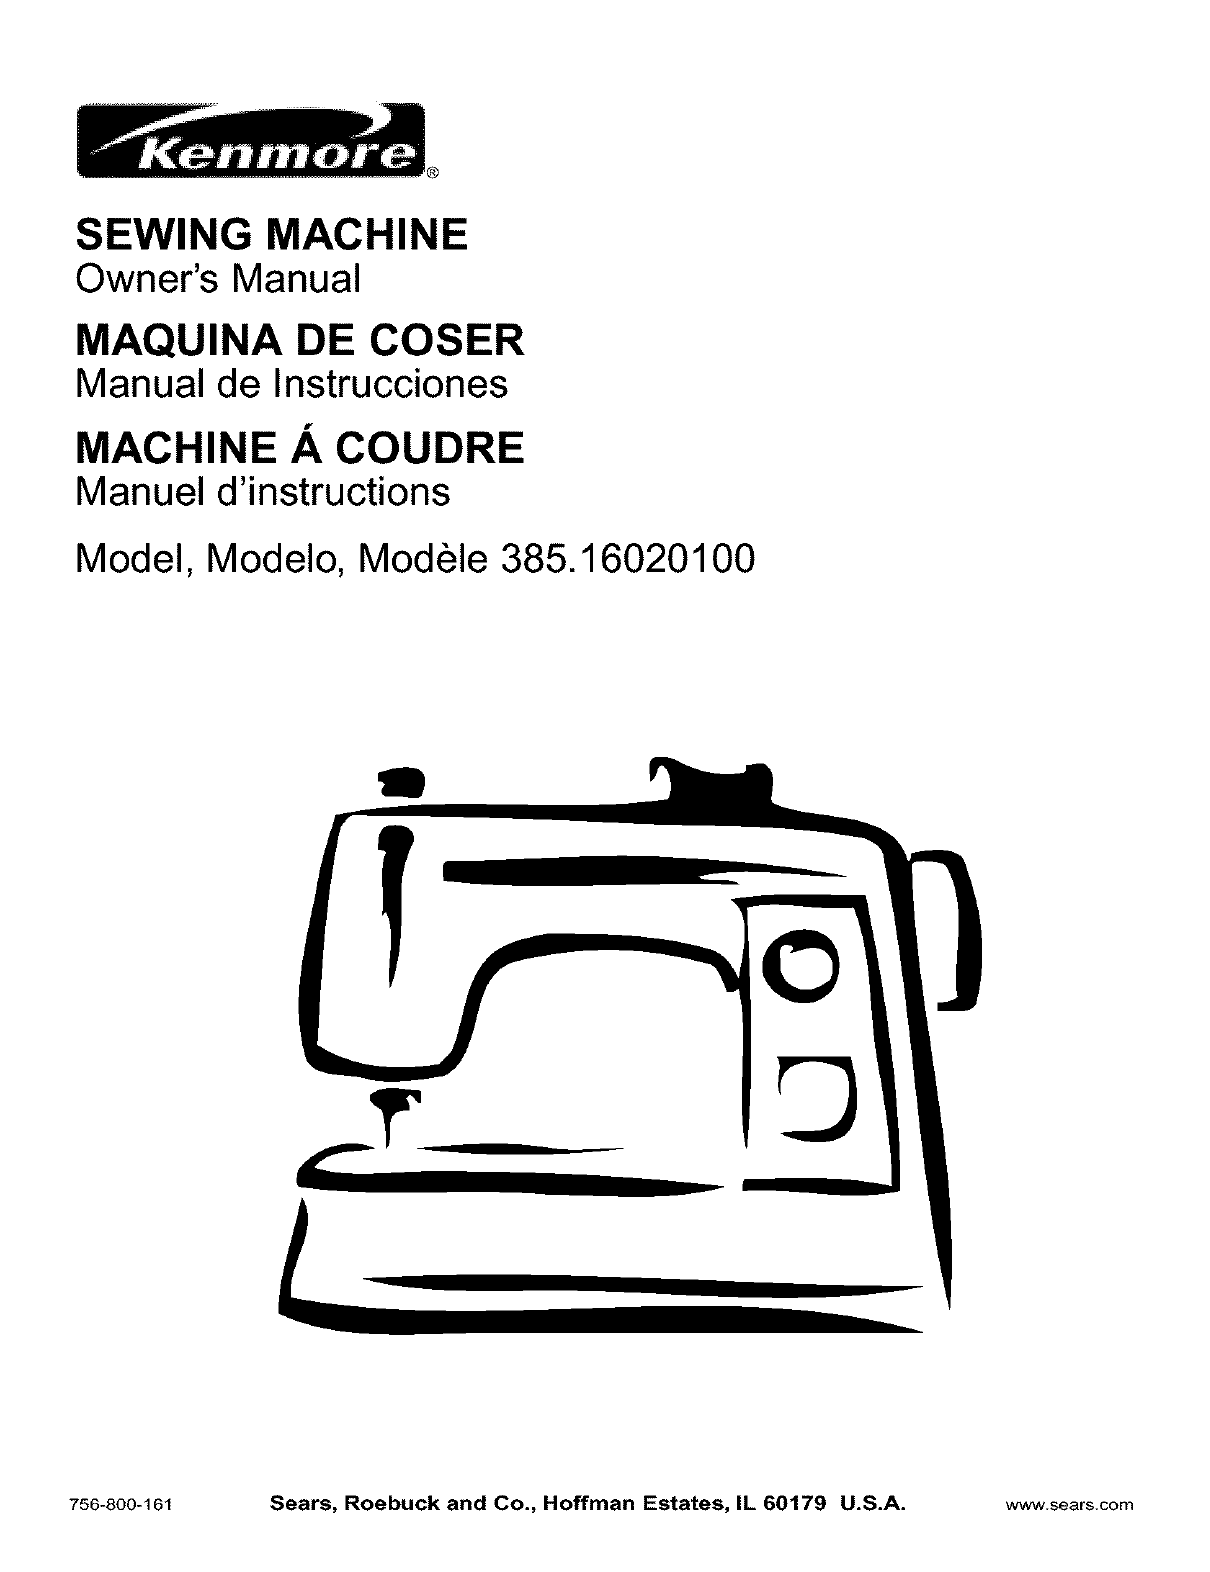 SEWING MACHINE. Owner's Manual